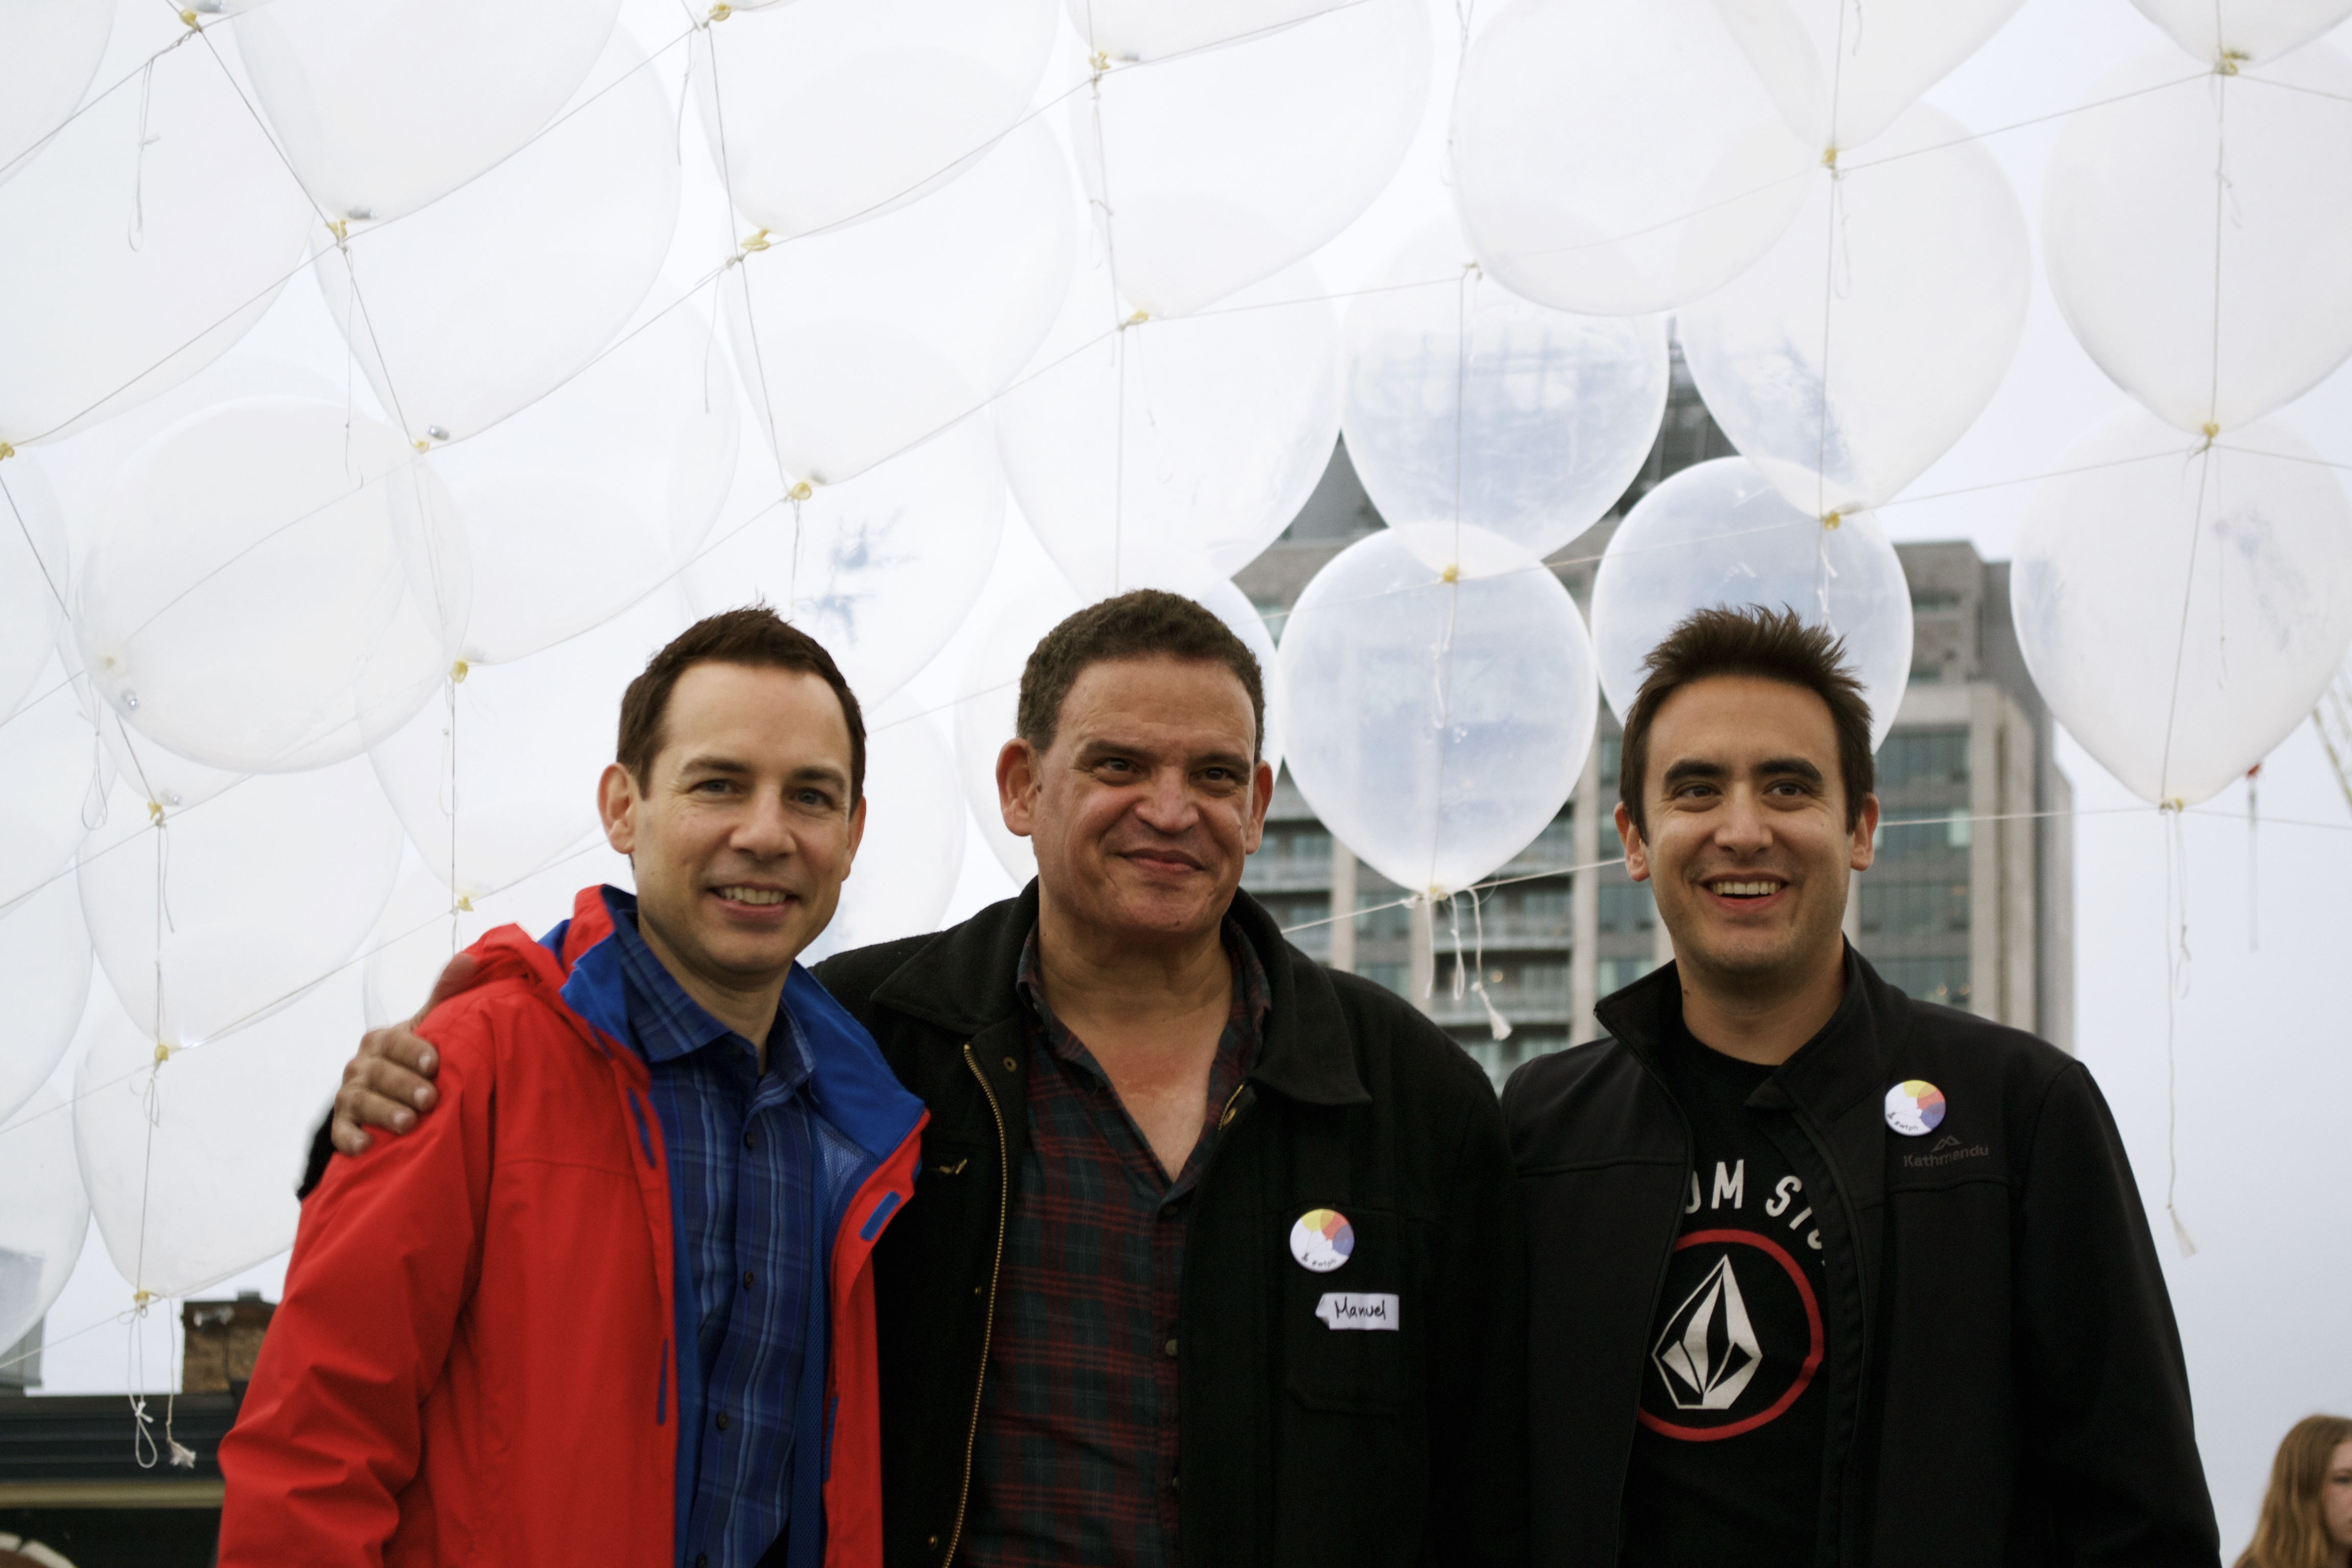 Three men smile for the camera with balloons floating overhead